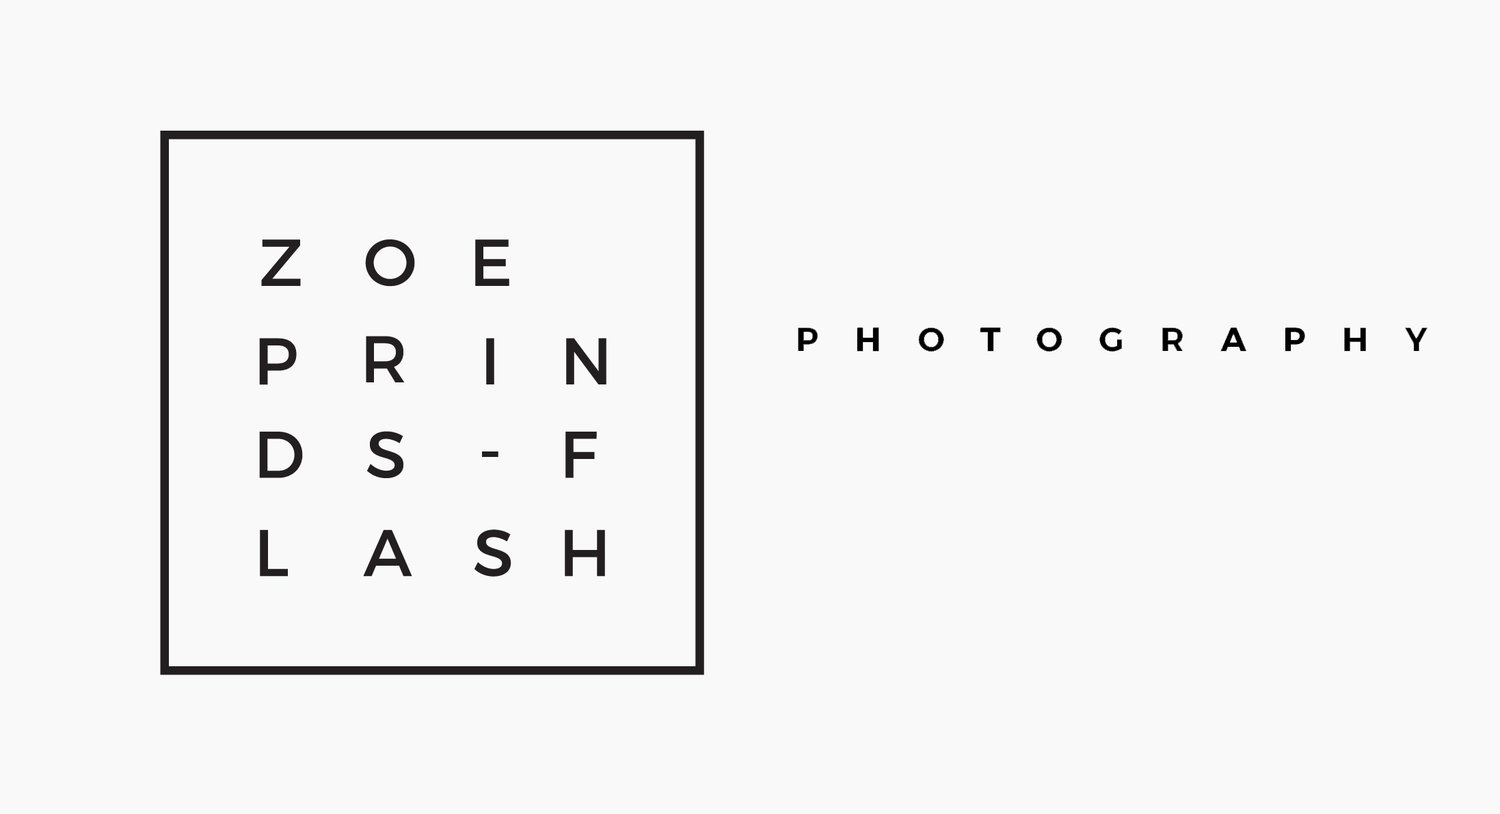 zoe prinds-flash photography